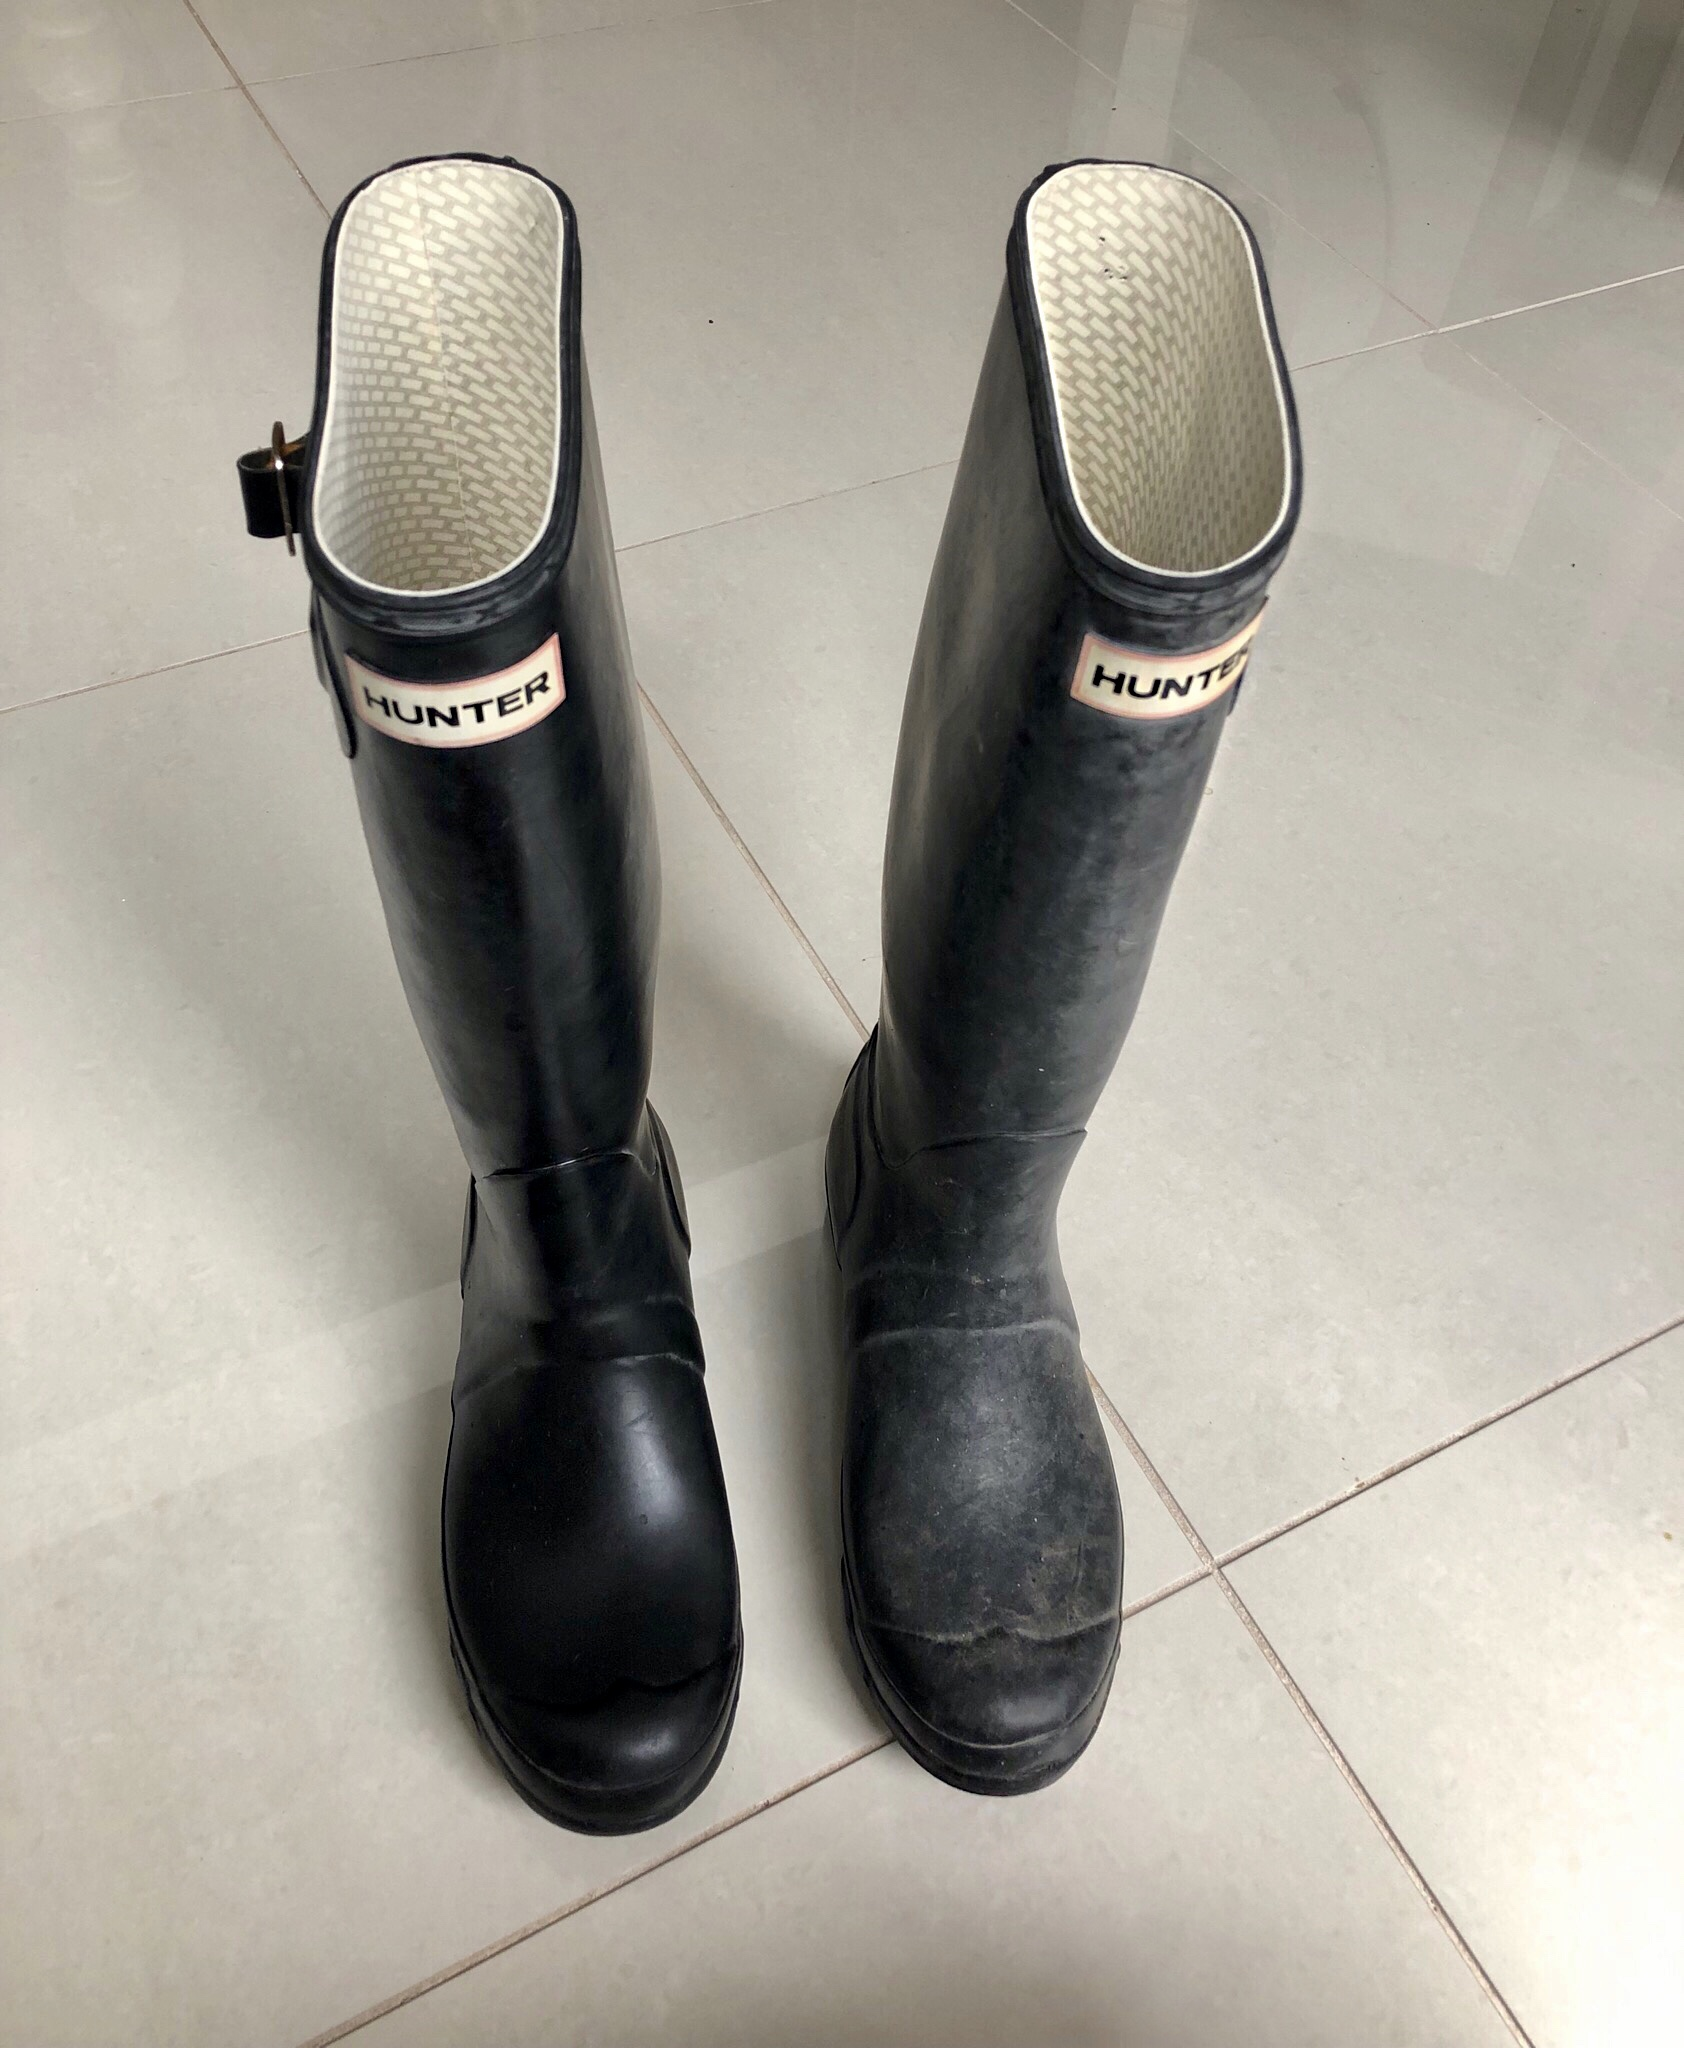 YOU CAN ALSO USE BABY OIL ON YOUR WELLINGTON BOOTS -